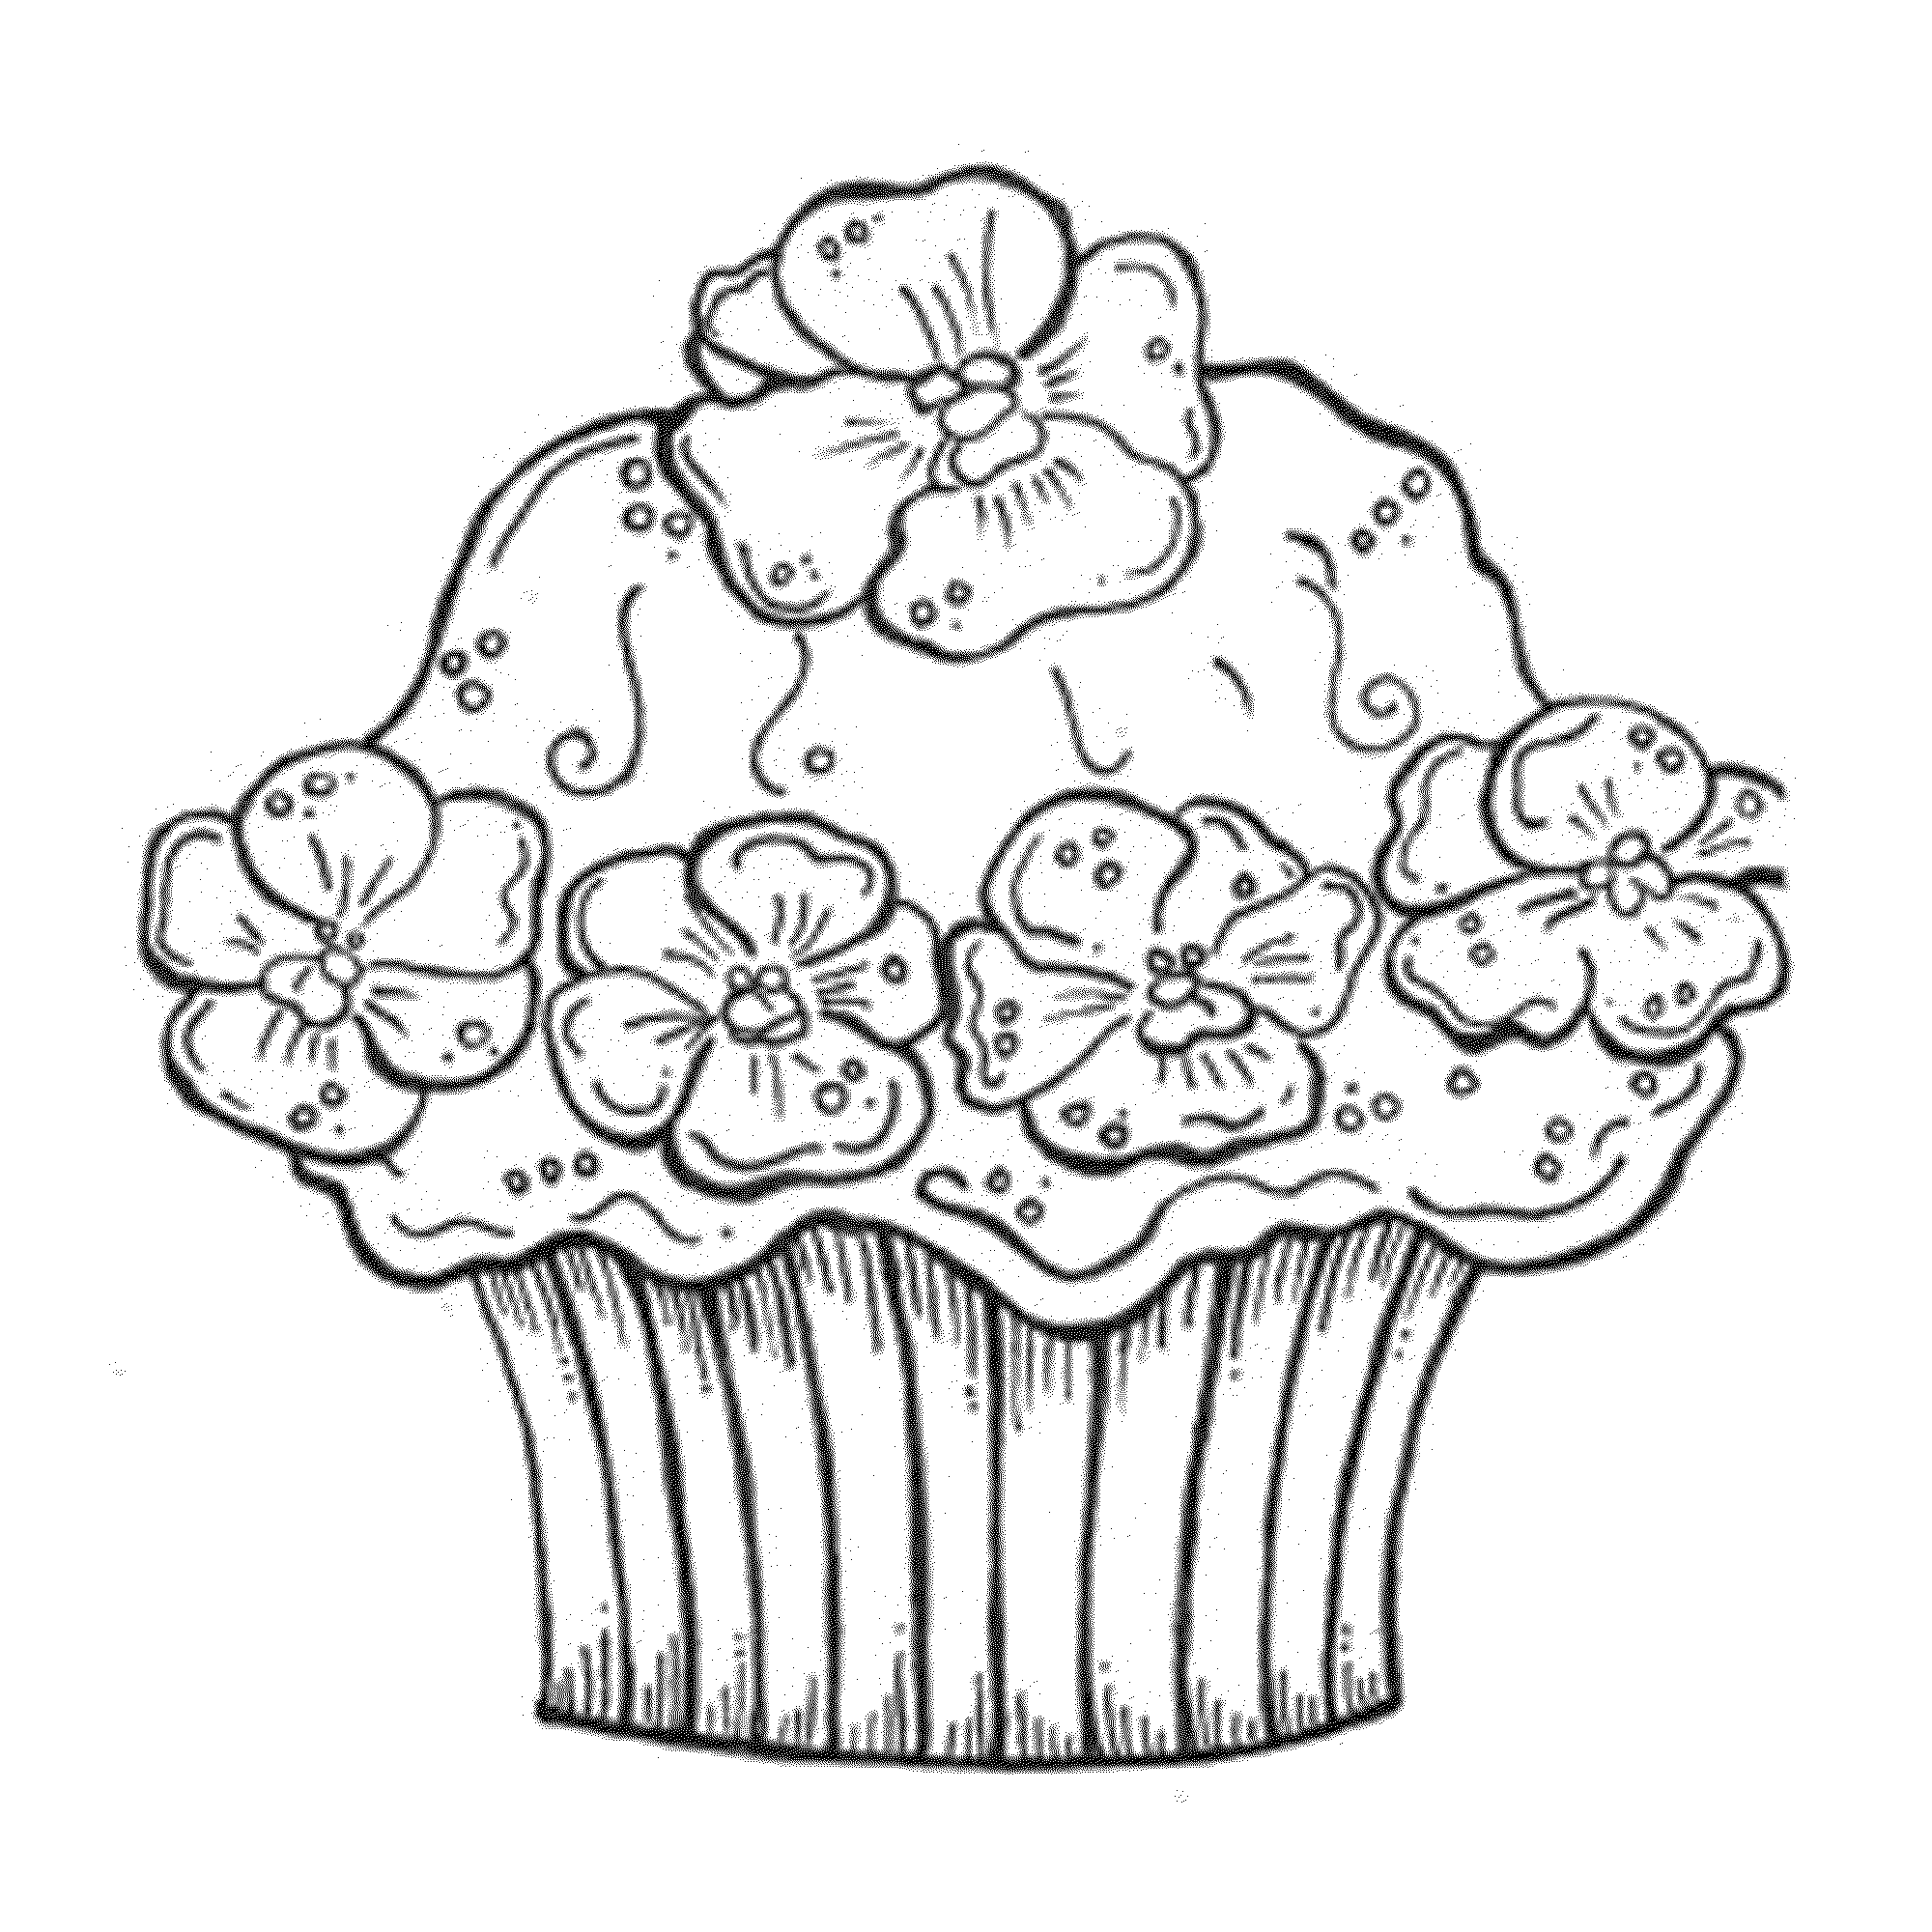 Cupcake Coloring Pages Gallery Photos Happy Birthday coloring